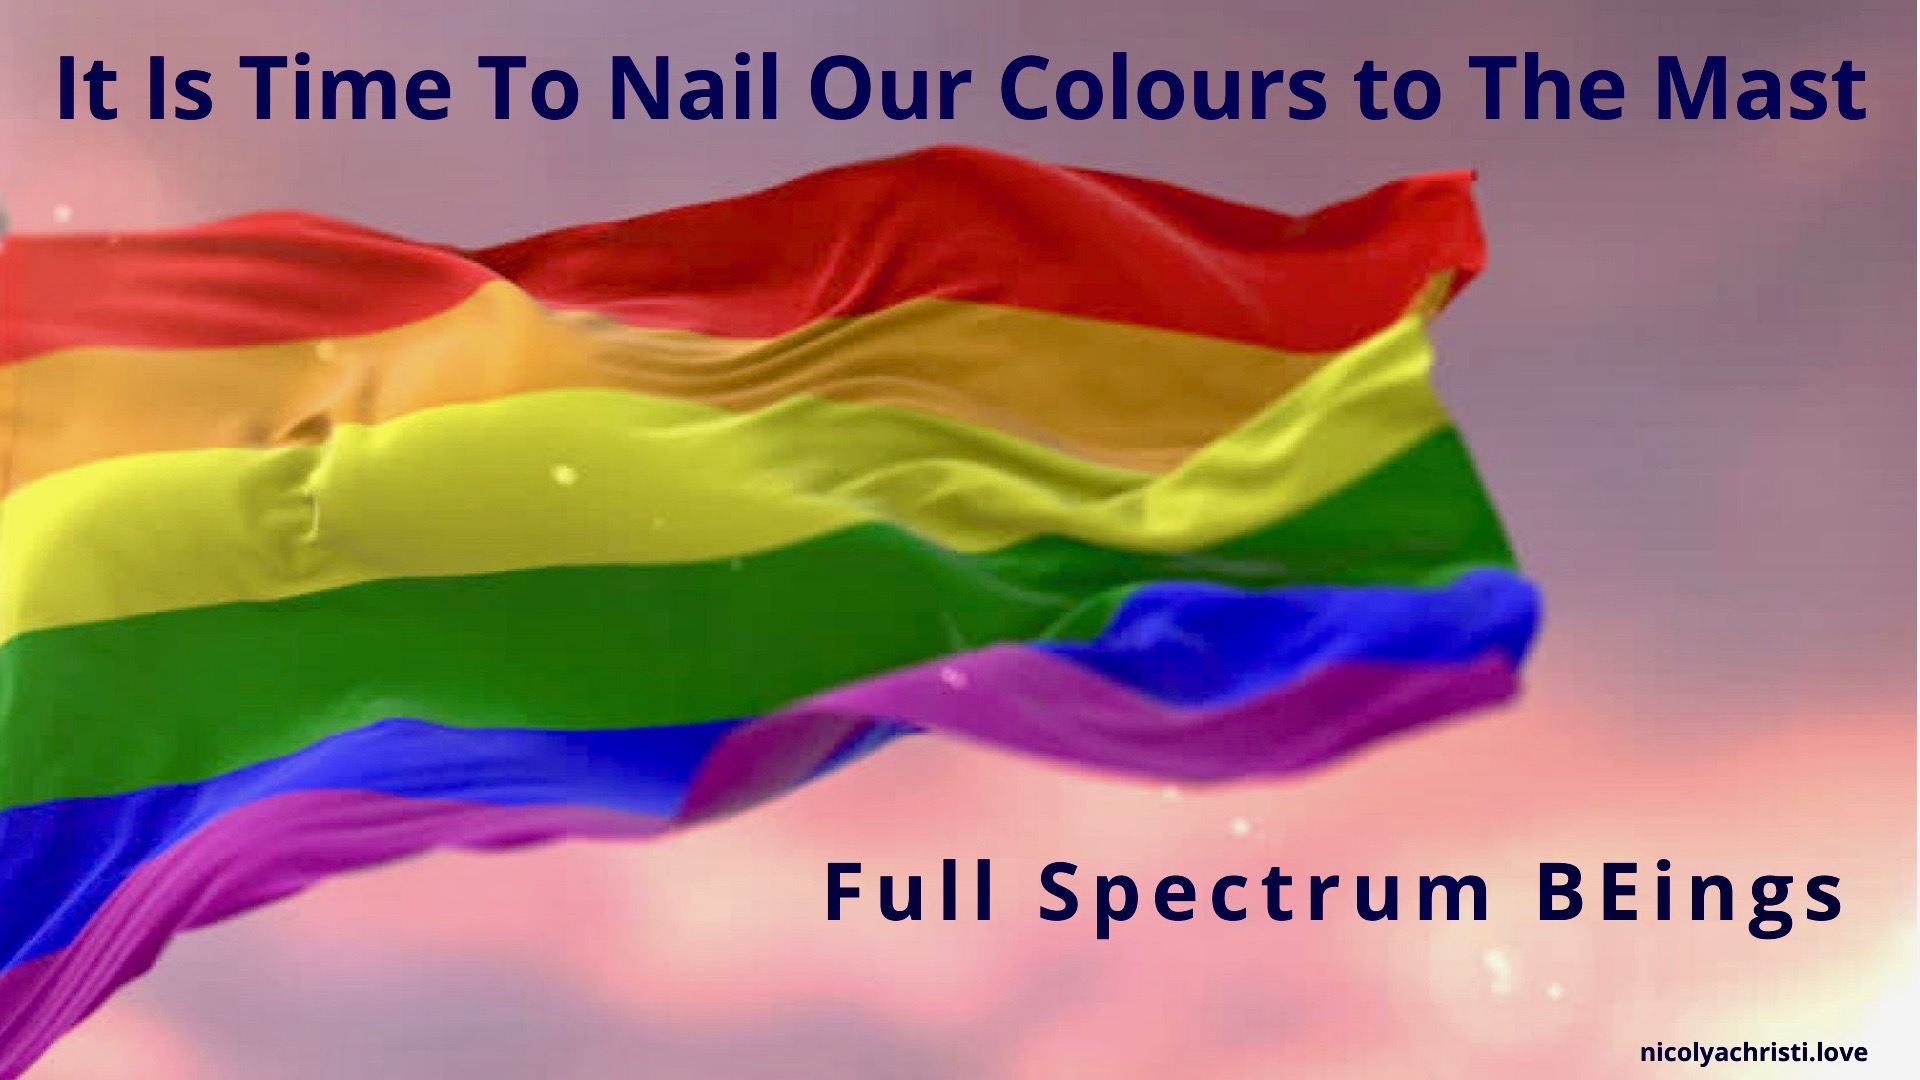 IT IS TIME TO NAIL OUR COLOURS TO THE MAST